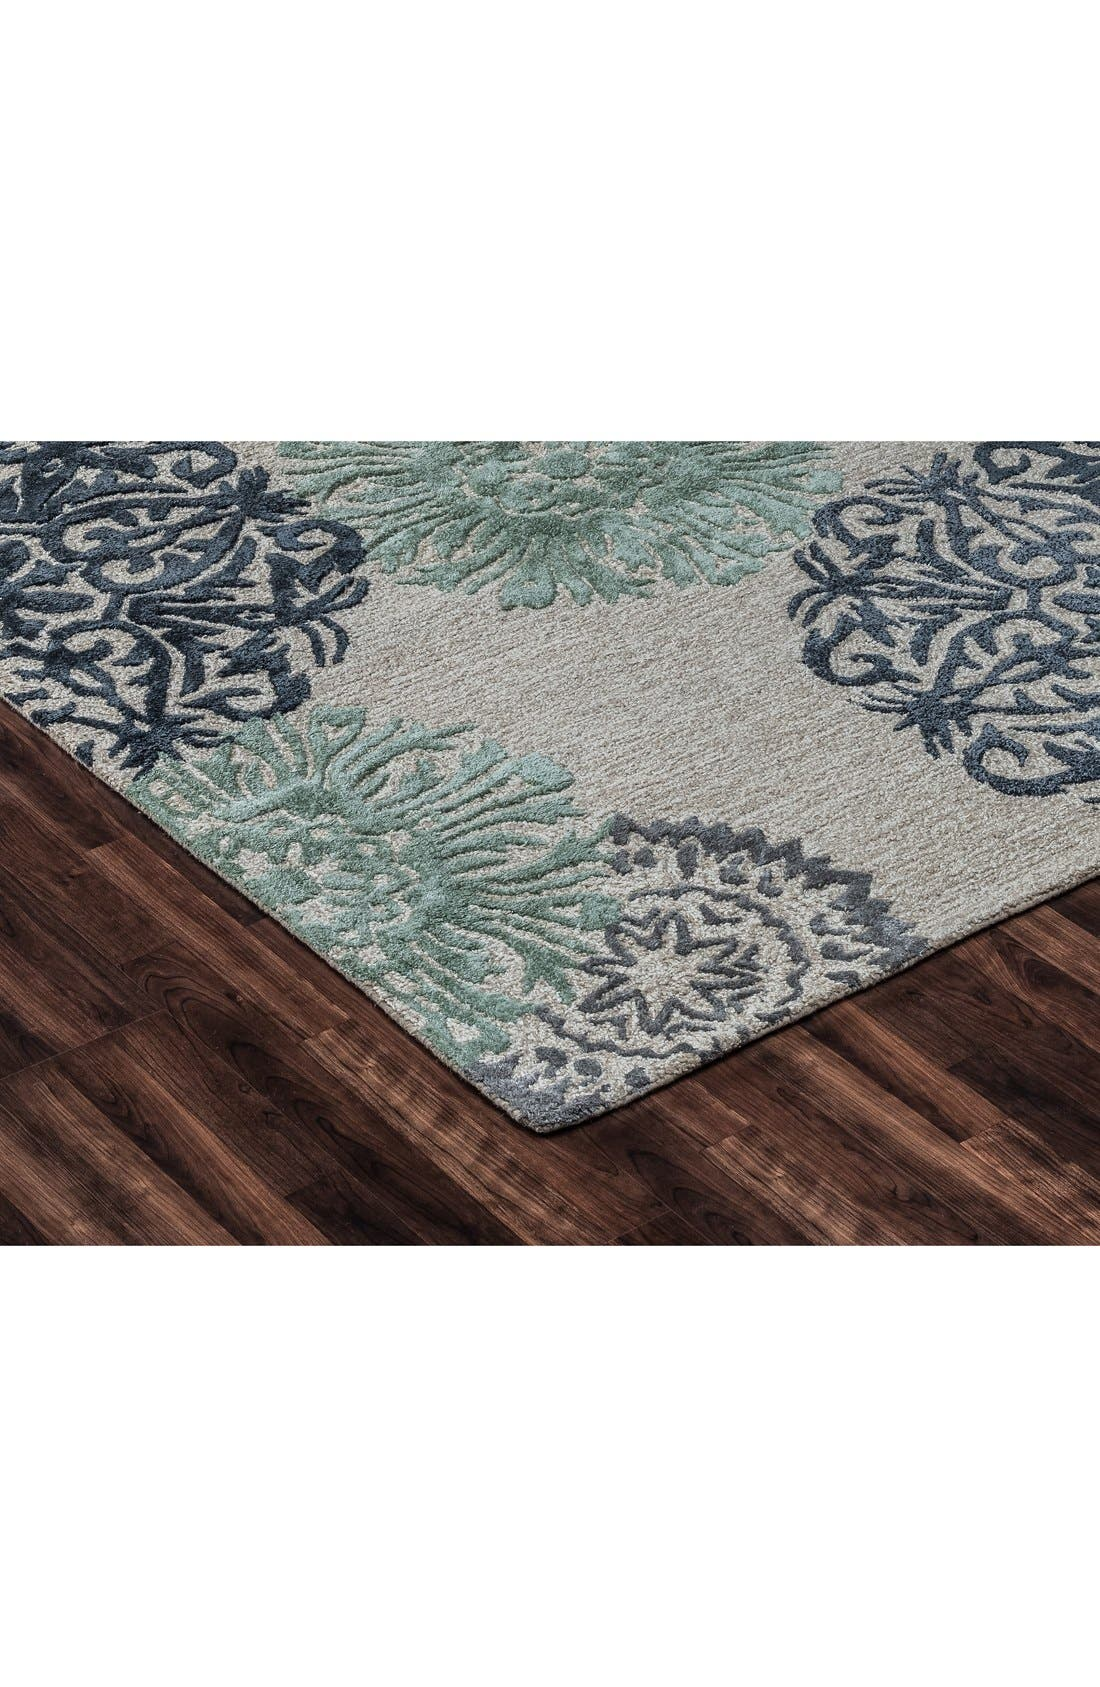 'Eden Harbor' Hand Tufted Wool Area Rug,                             Alternate thumbnail 7, color,                             Navy/ Aqua/ Grey